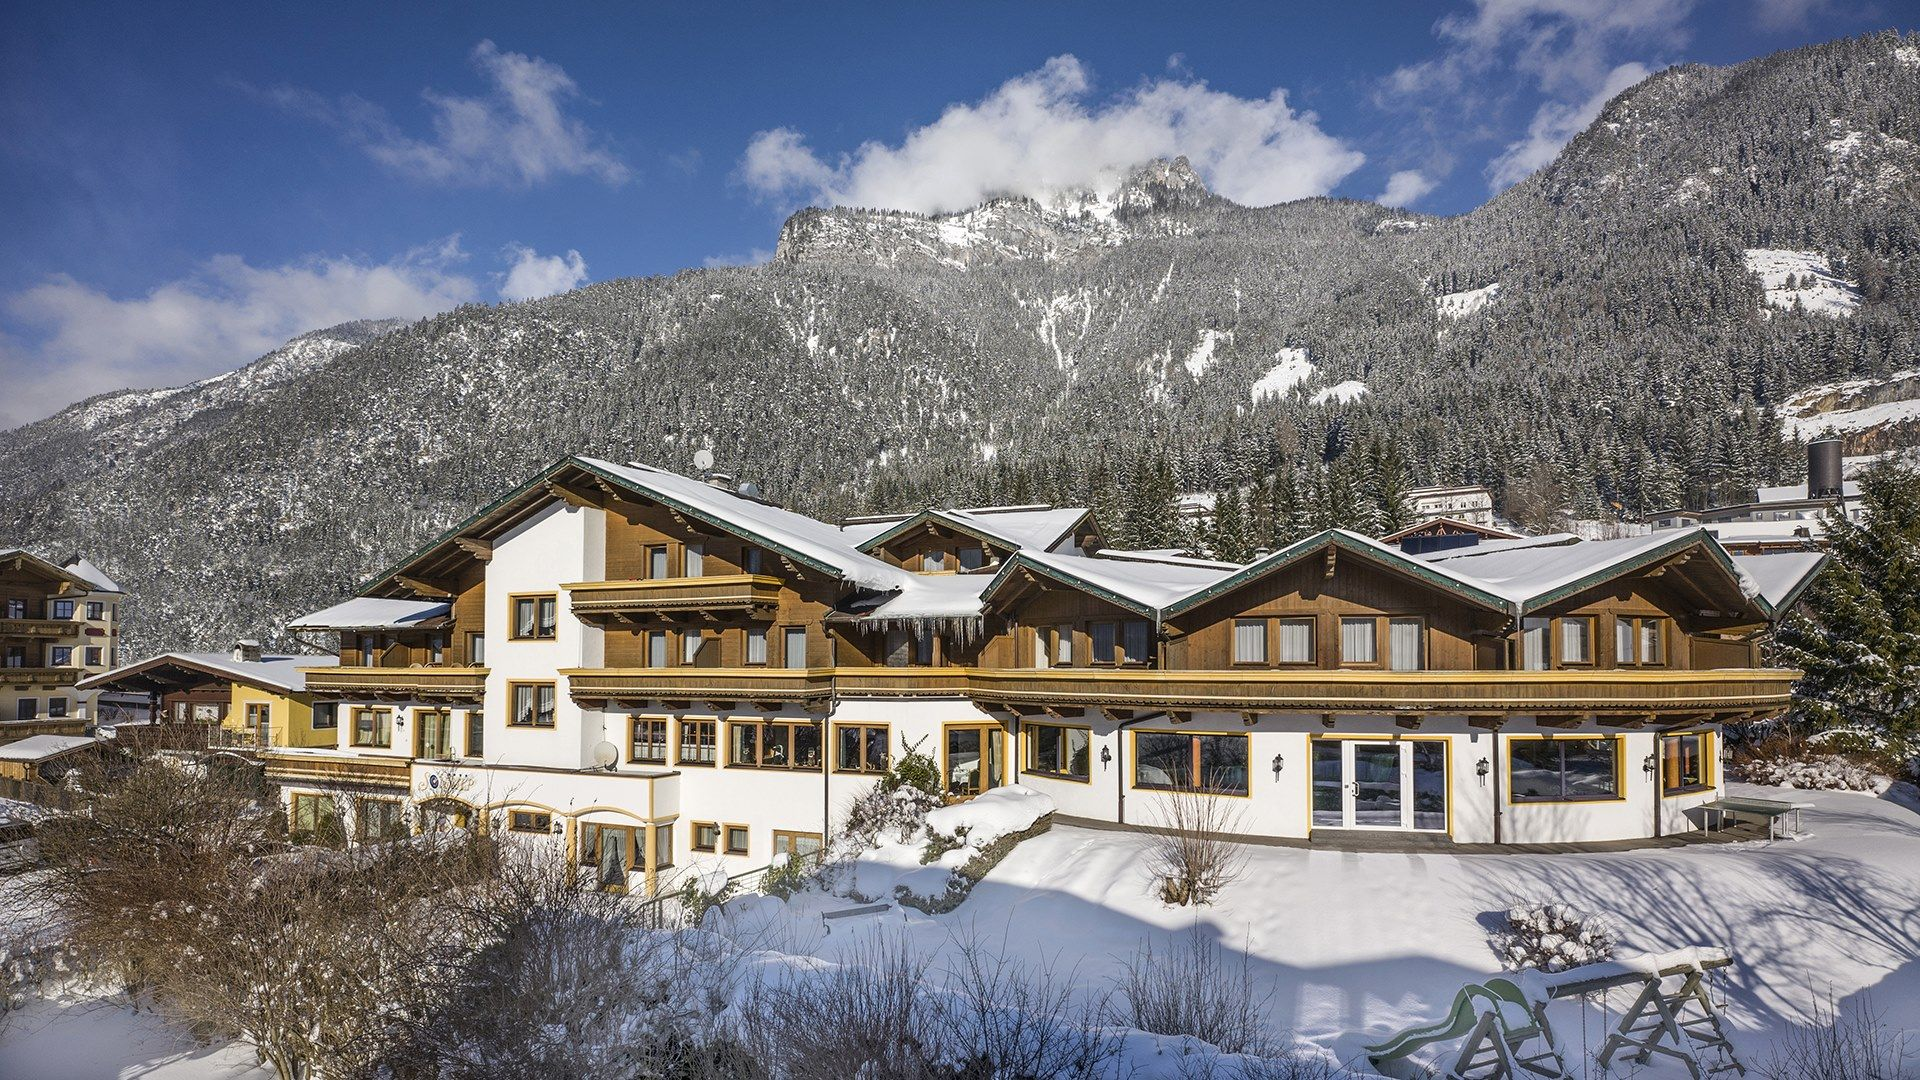 Hotel Sonnalp in Maurach im Winter